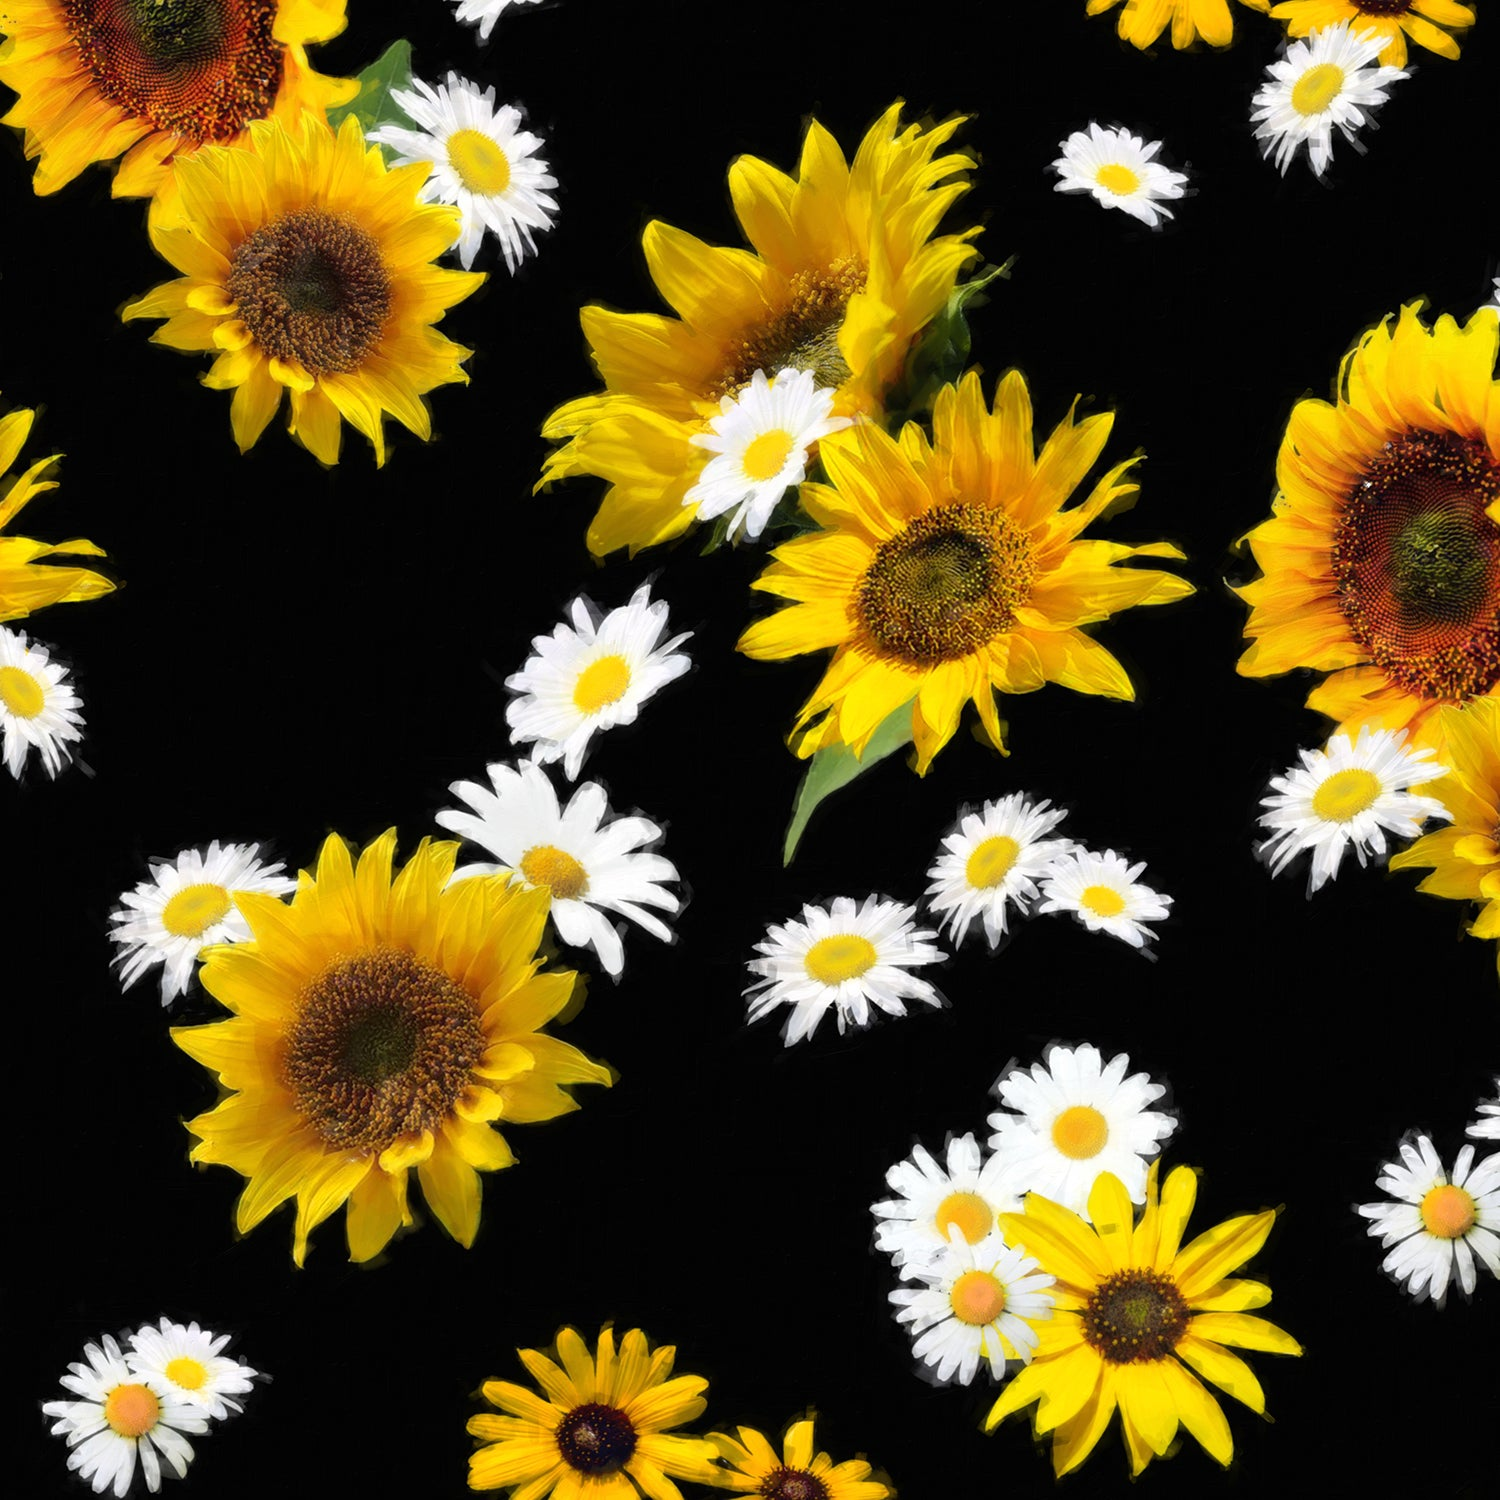 sunflowers and daisies capris roxie rudolph